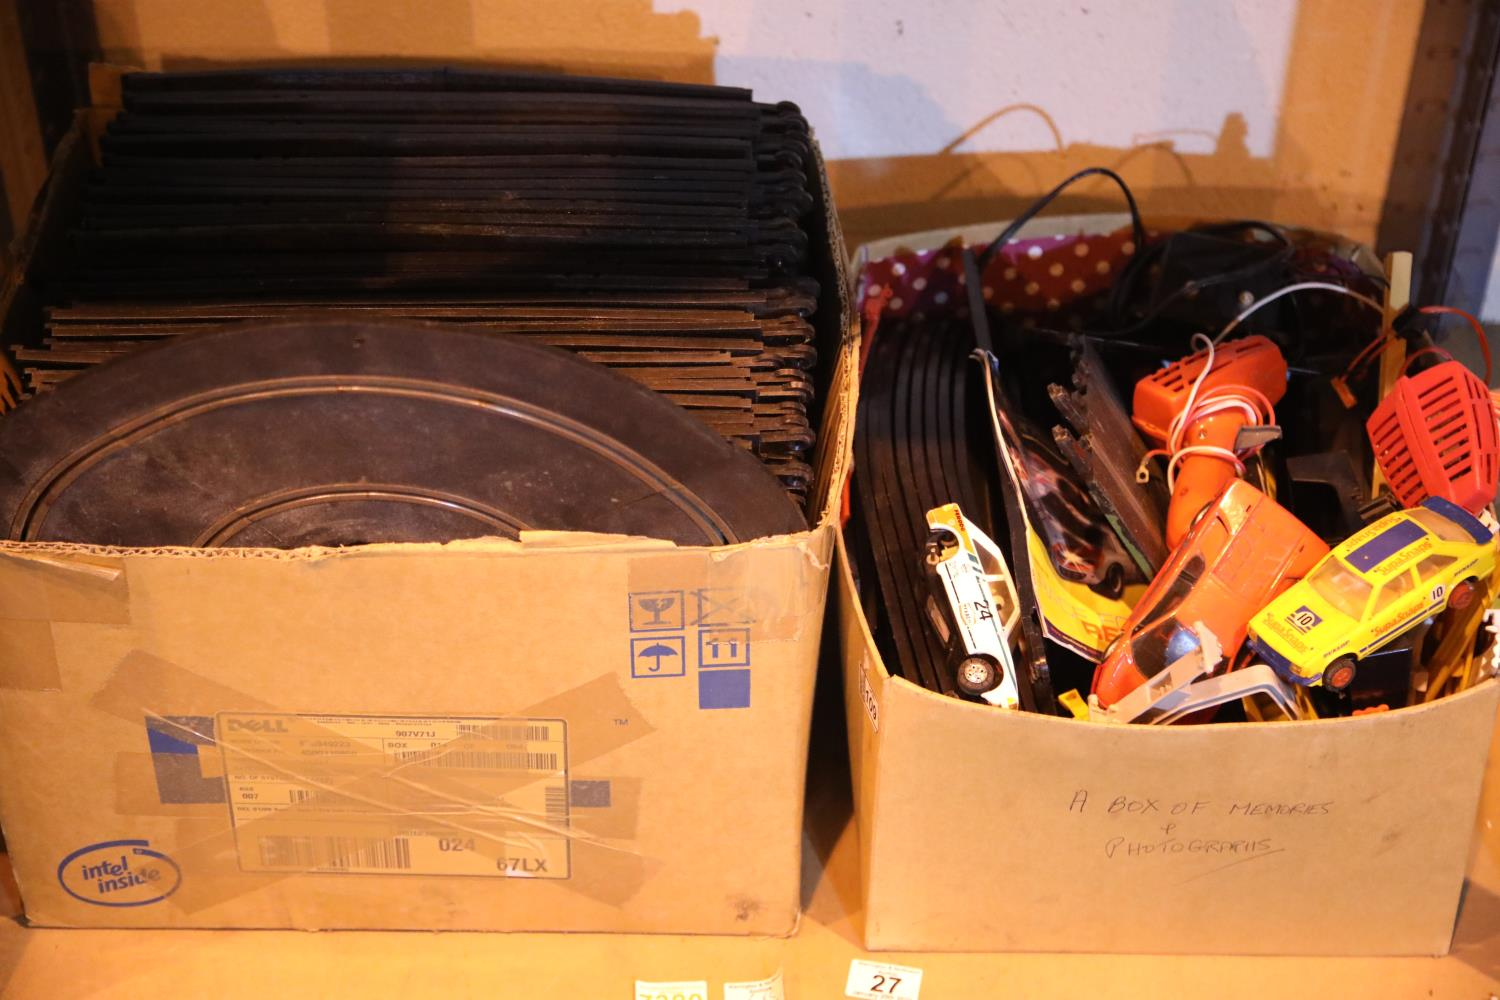 Shelf of mixed Scalextric items including cars and track. Not available for in-house P&P, contact